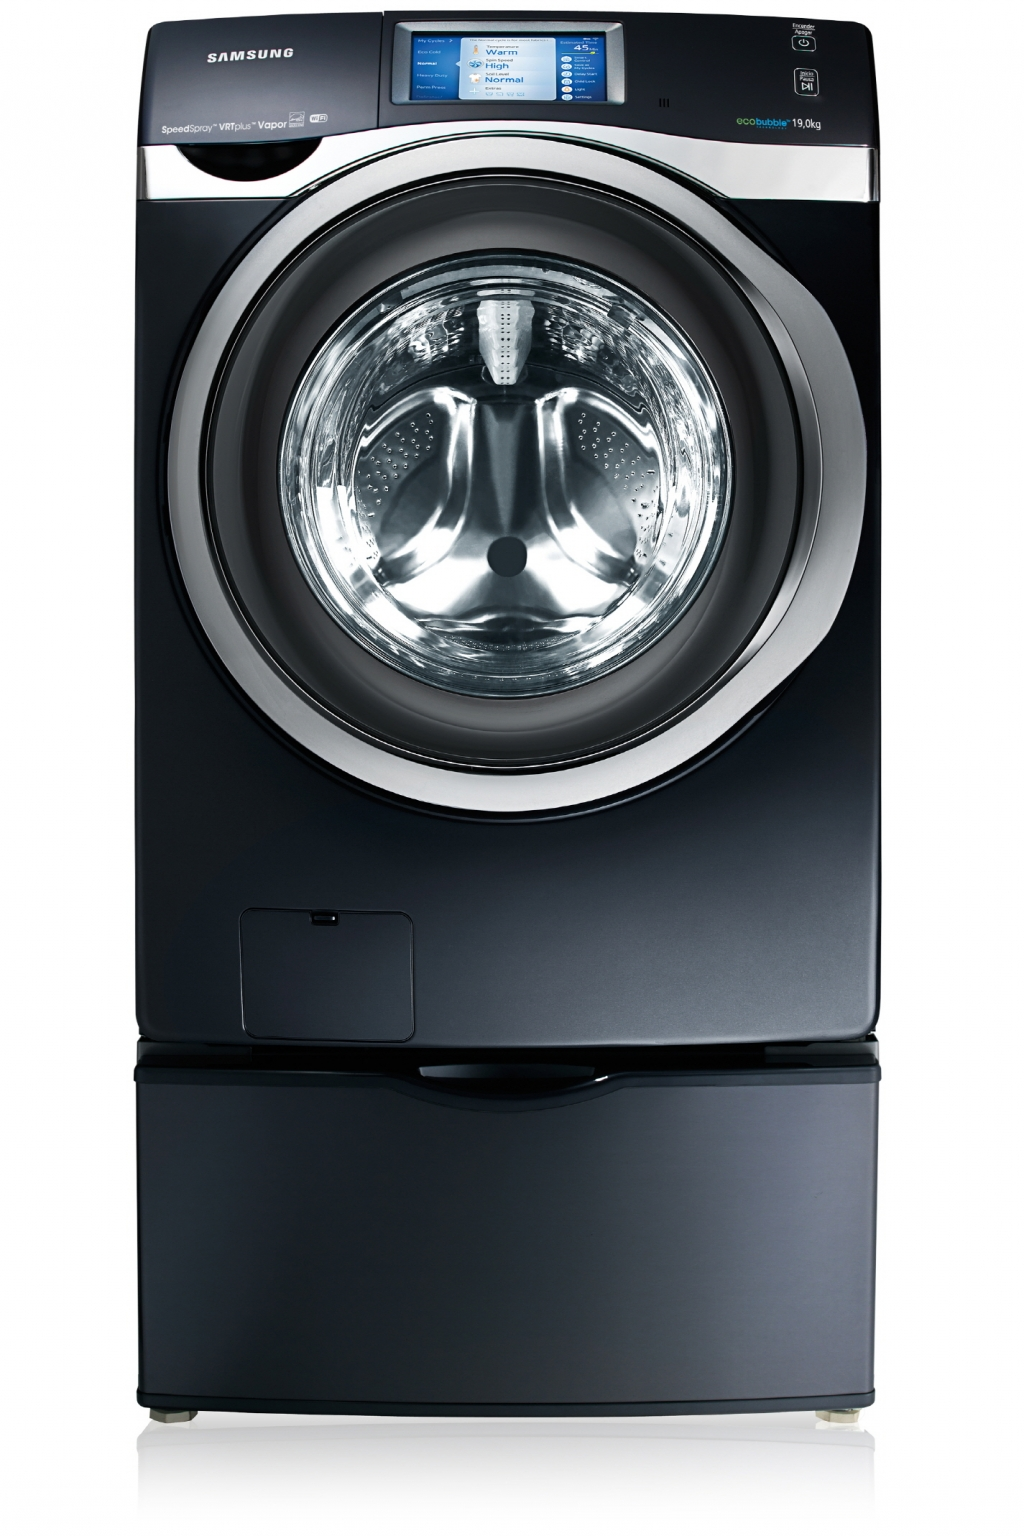 Samsung Washing Machine Wins Sustainable Product Certification from AHAM